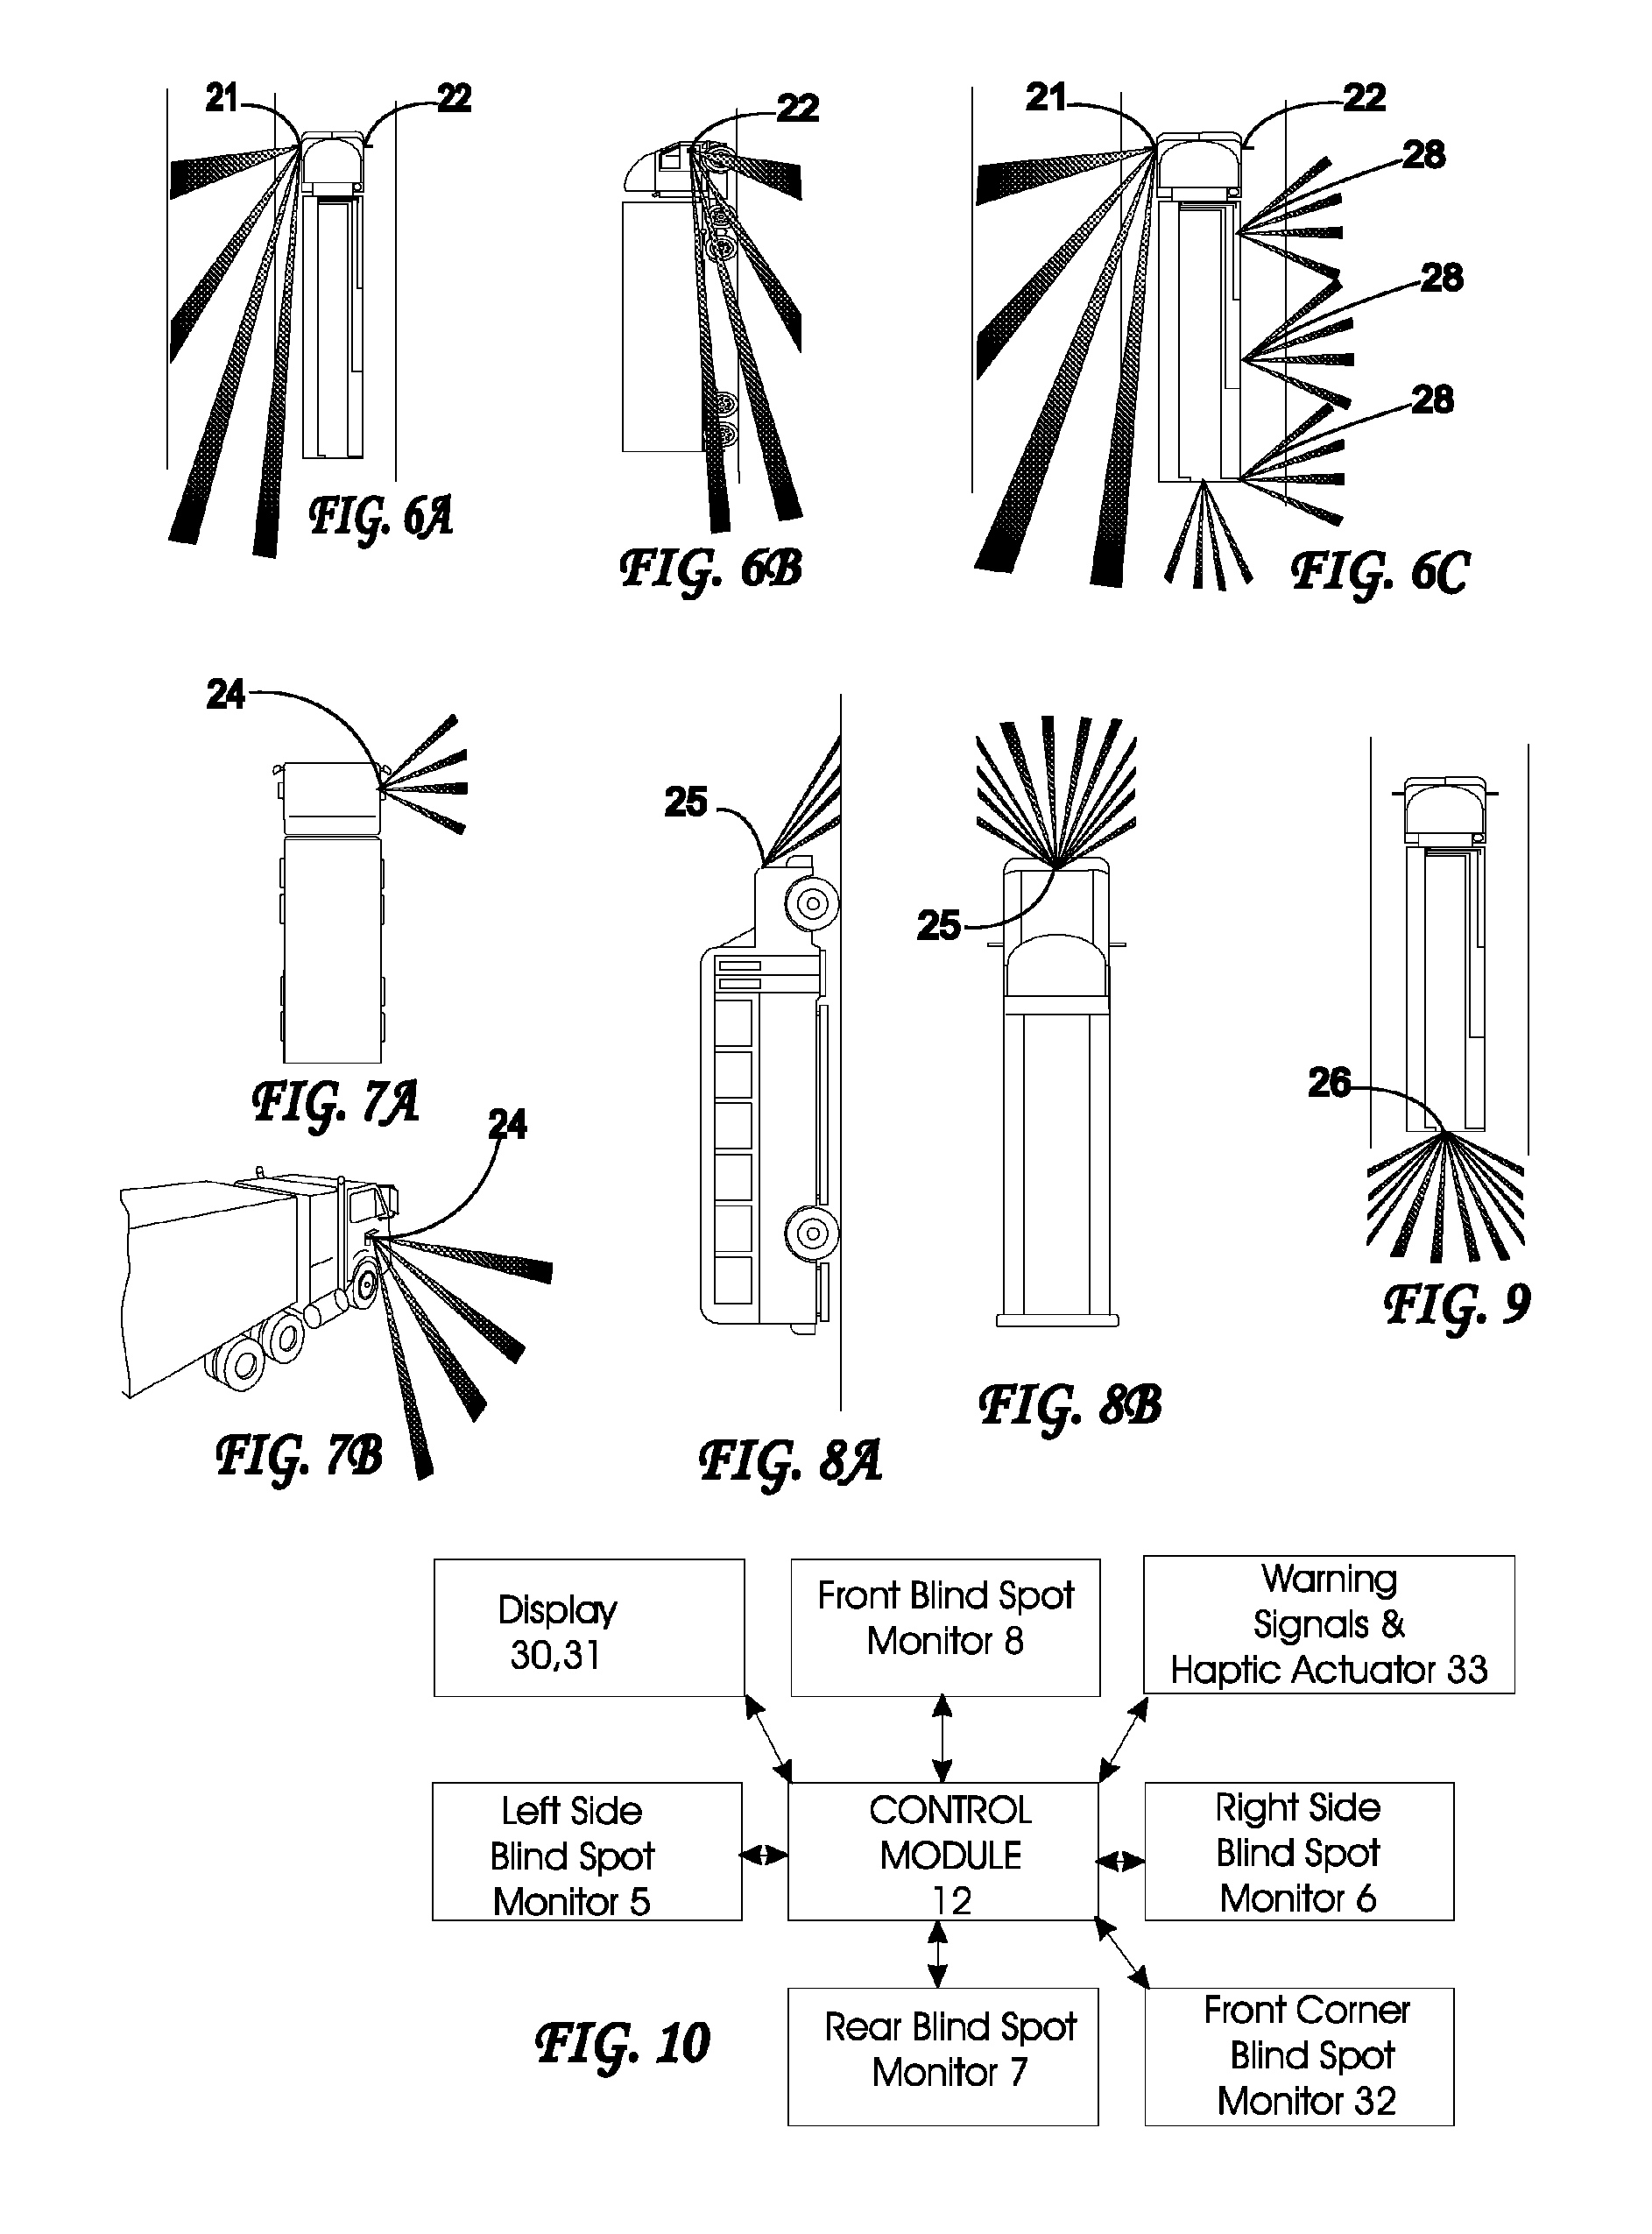 Patent Us 7783403 B2 Use The Or Circuit Composed Of Diodes And Resistors C A B Images